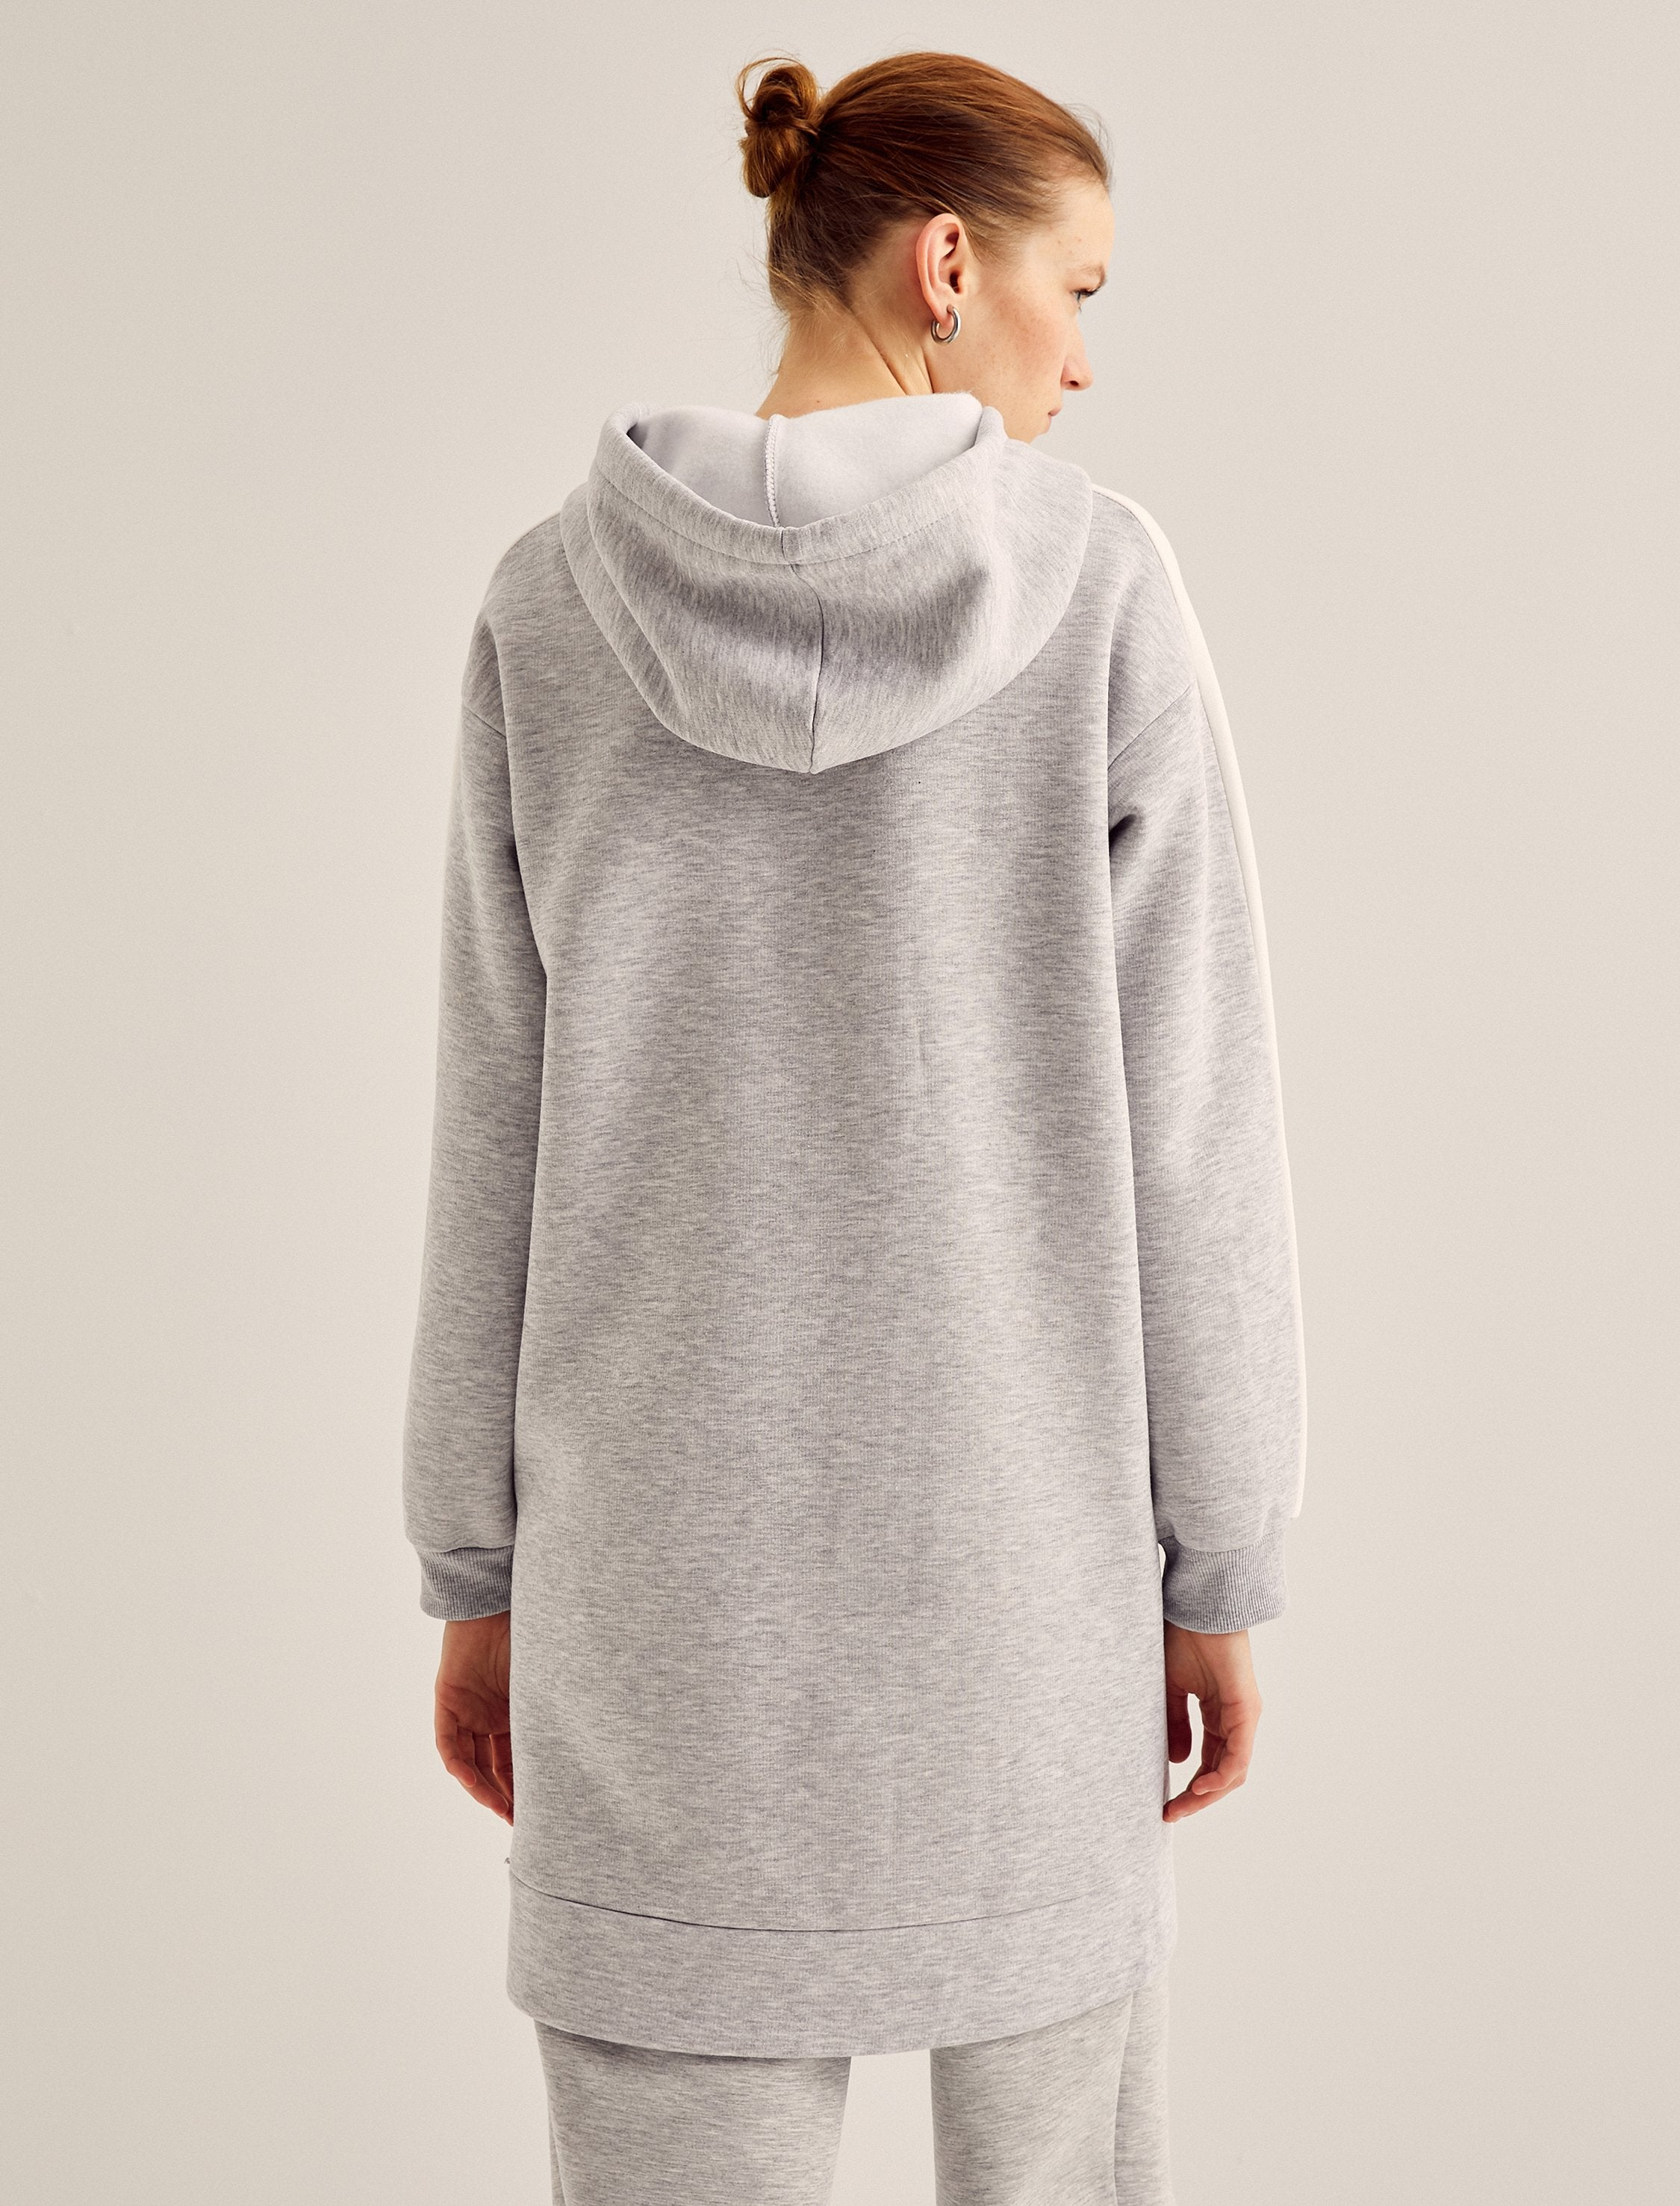 Oversize Tunic Hoodie With Pcokets in Gray